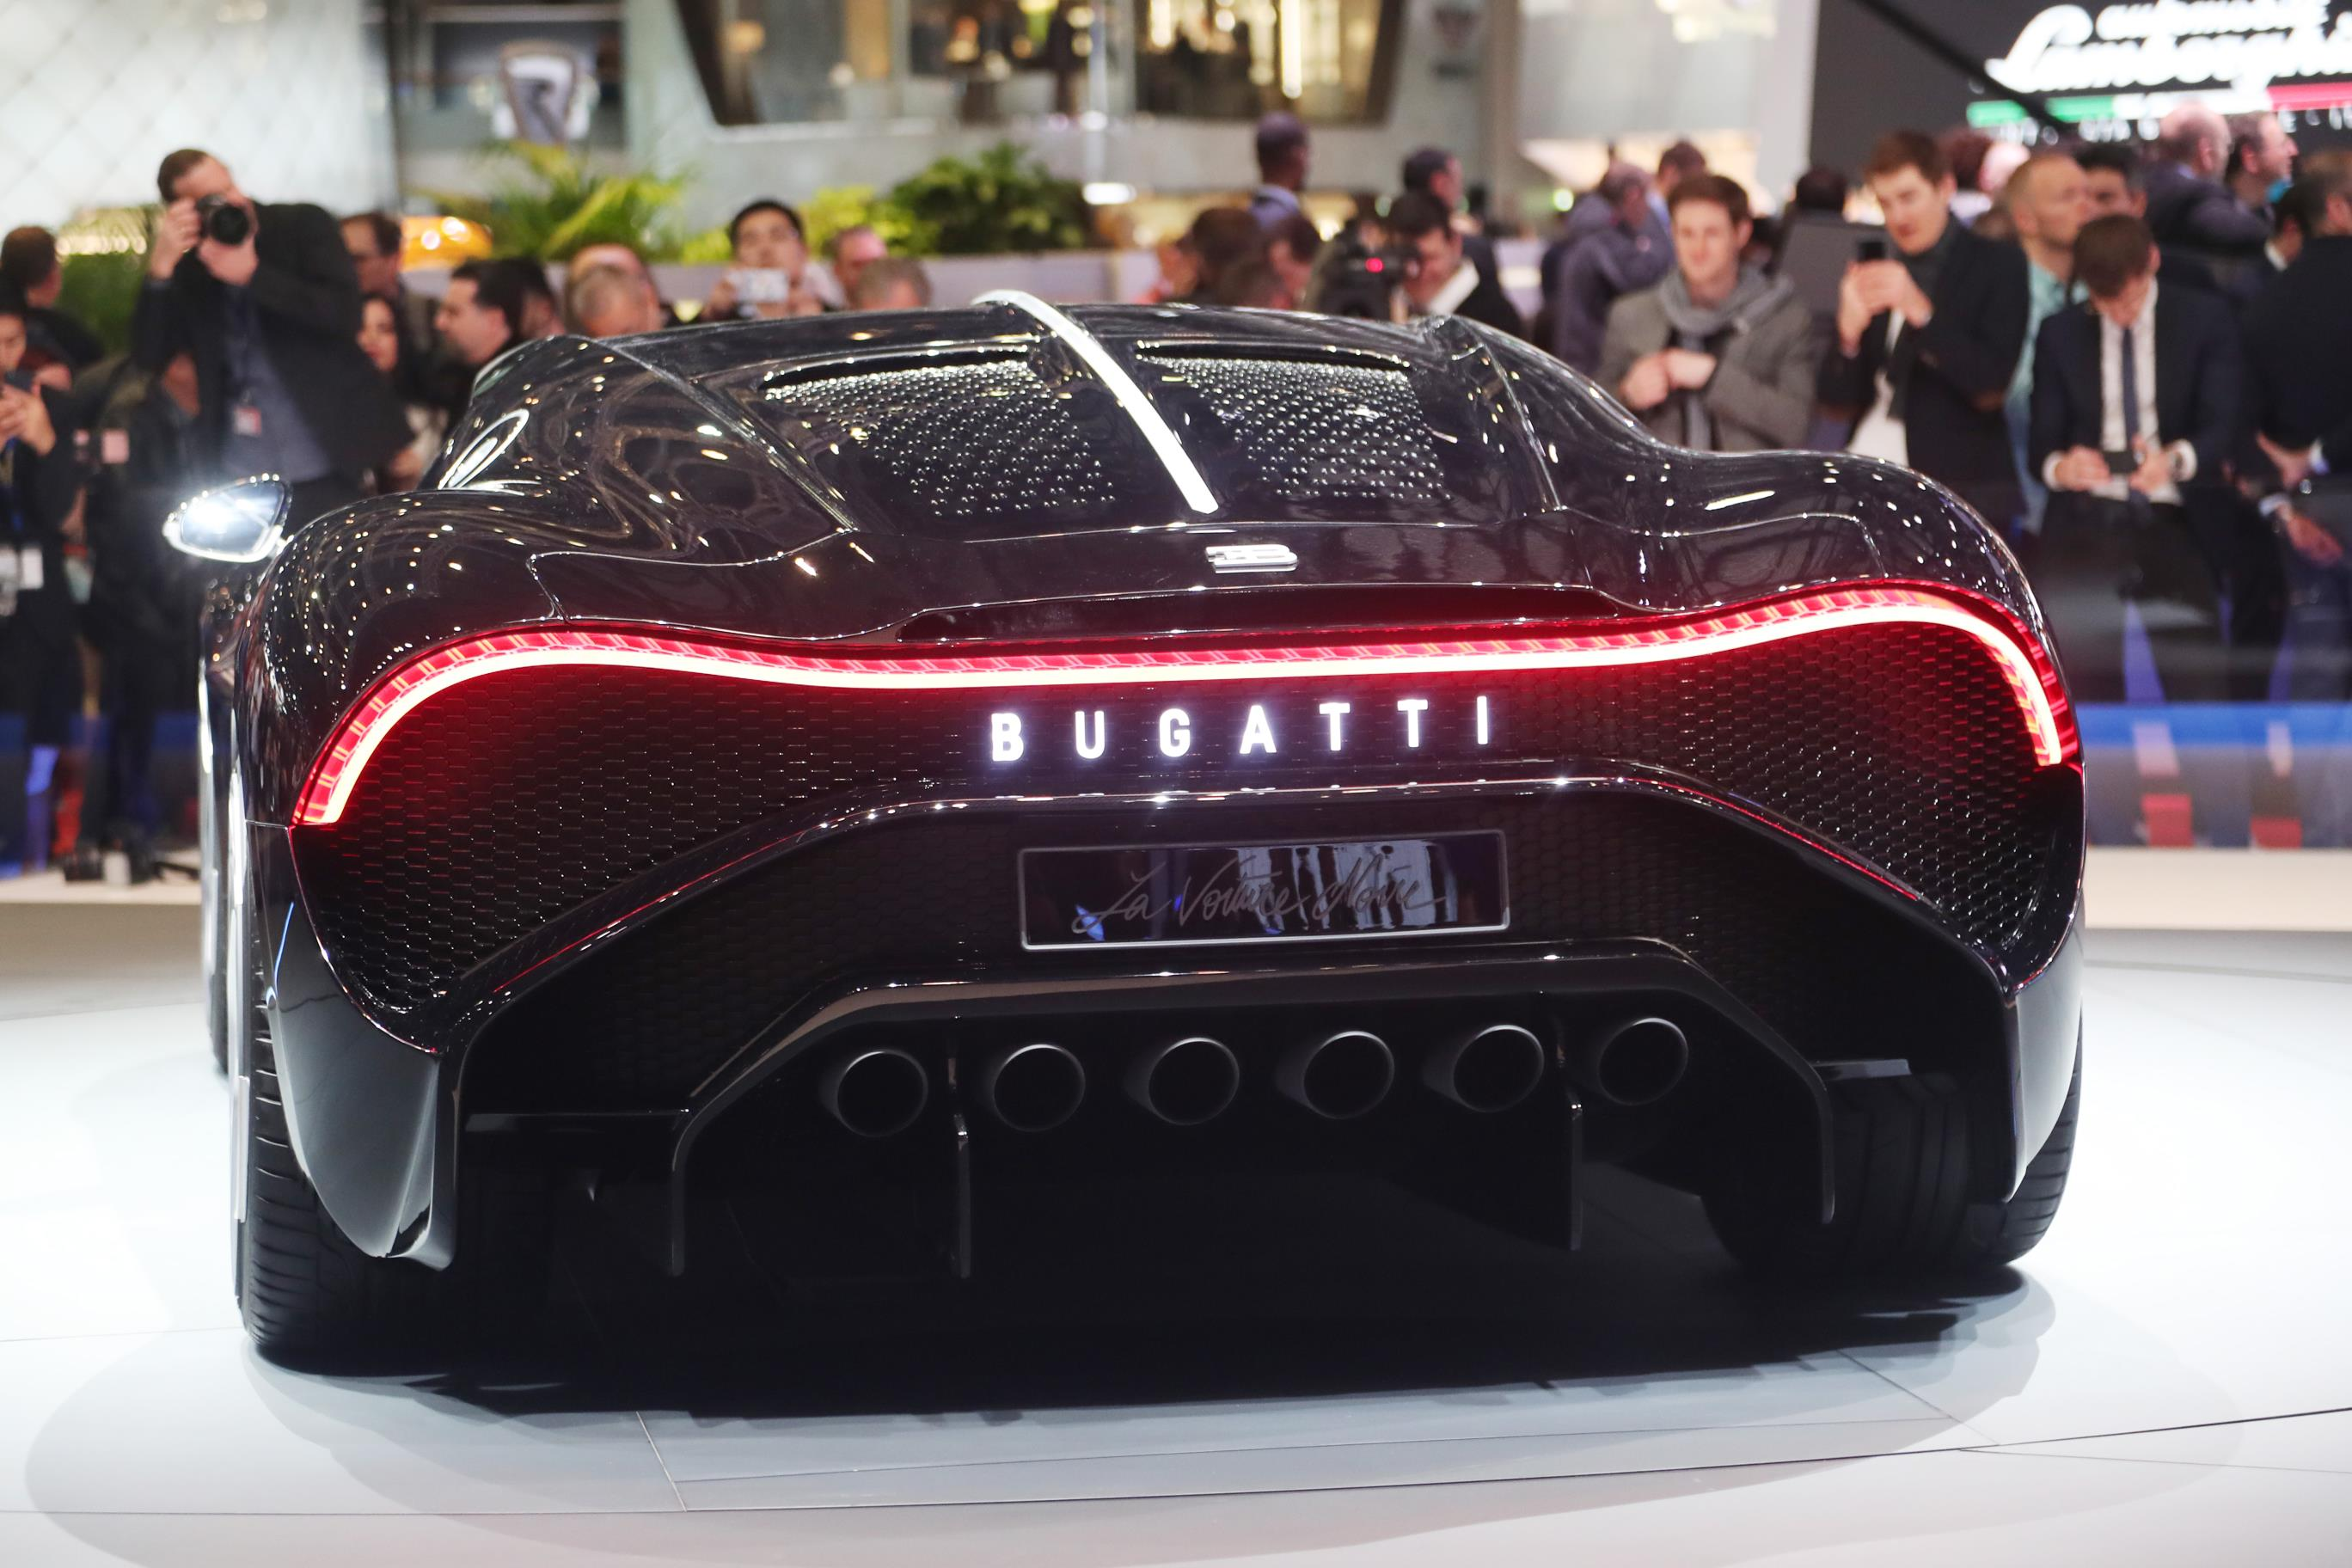 Bugatti La Voiture Noire Unveiled Most Expensive Car Ever